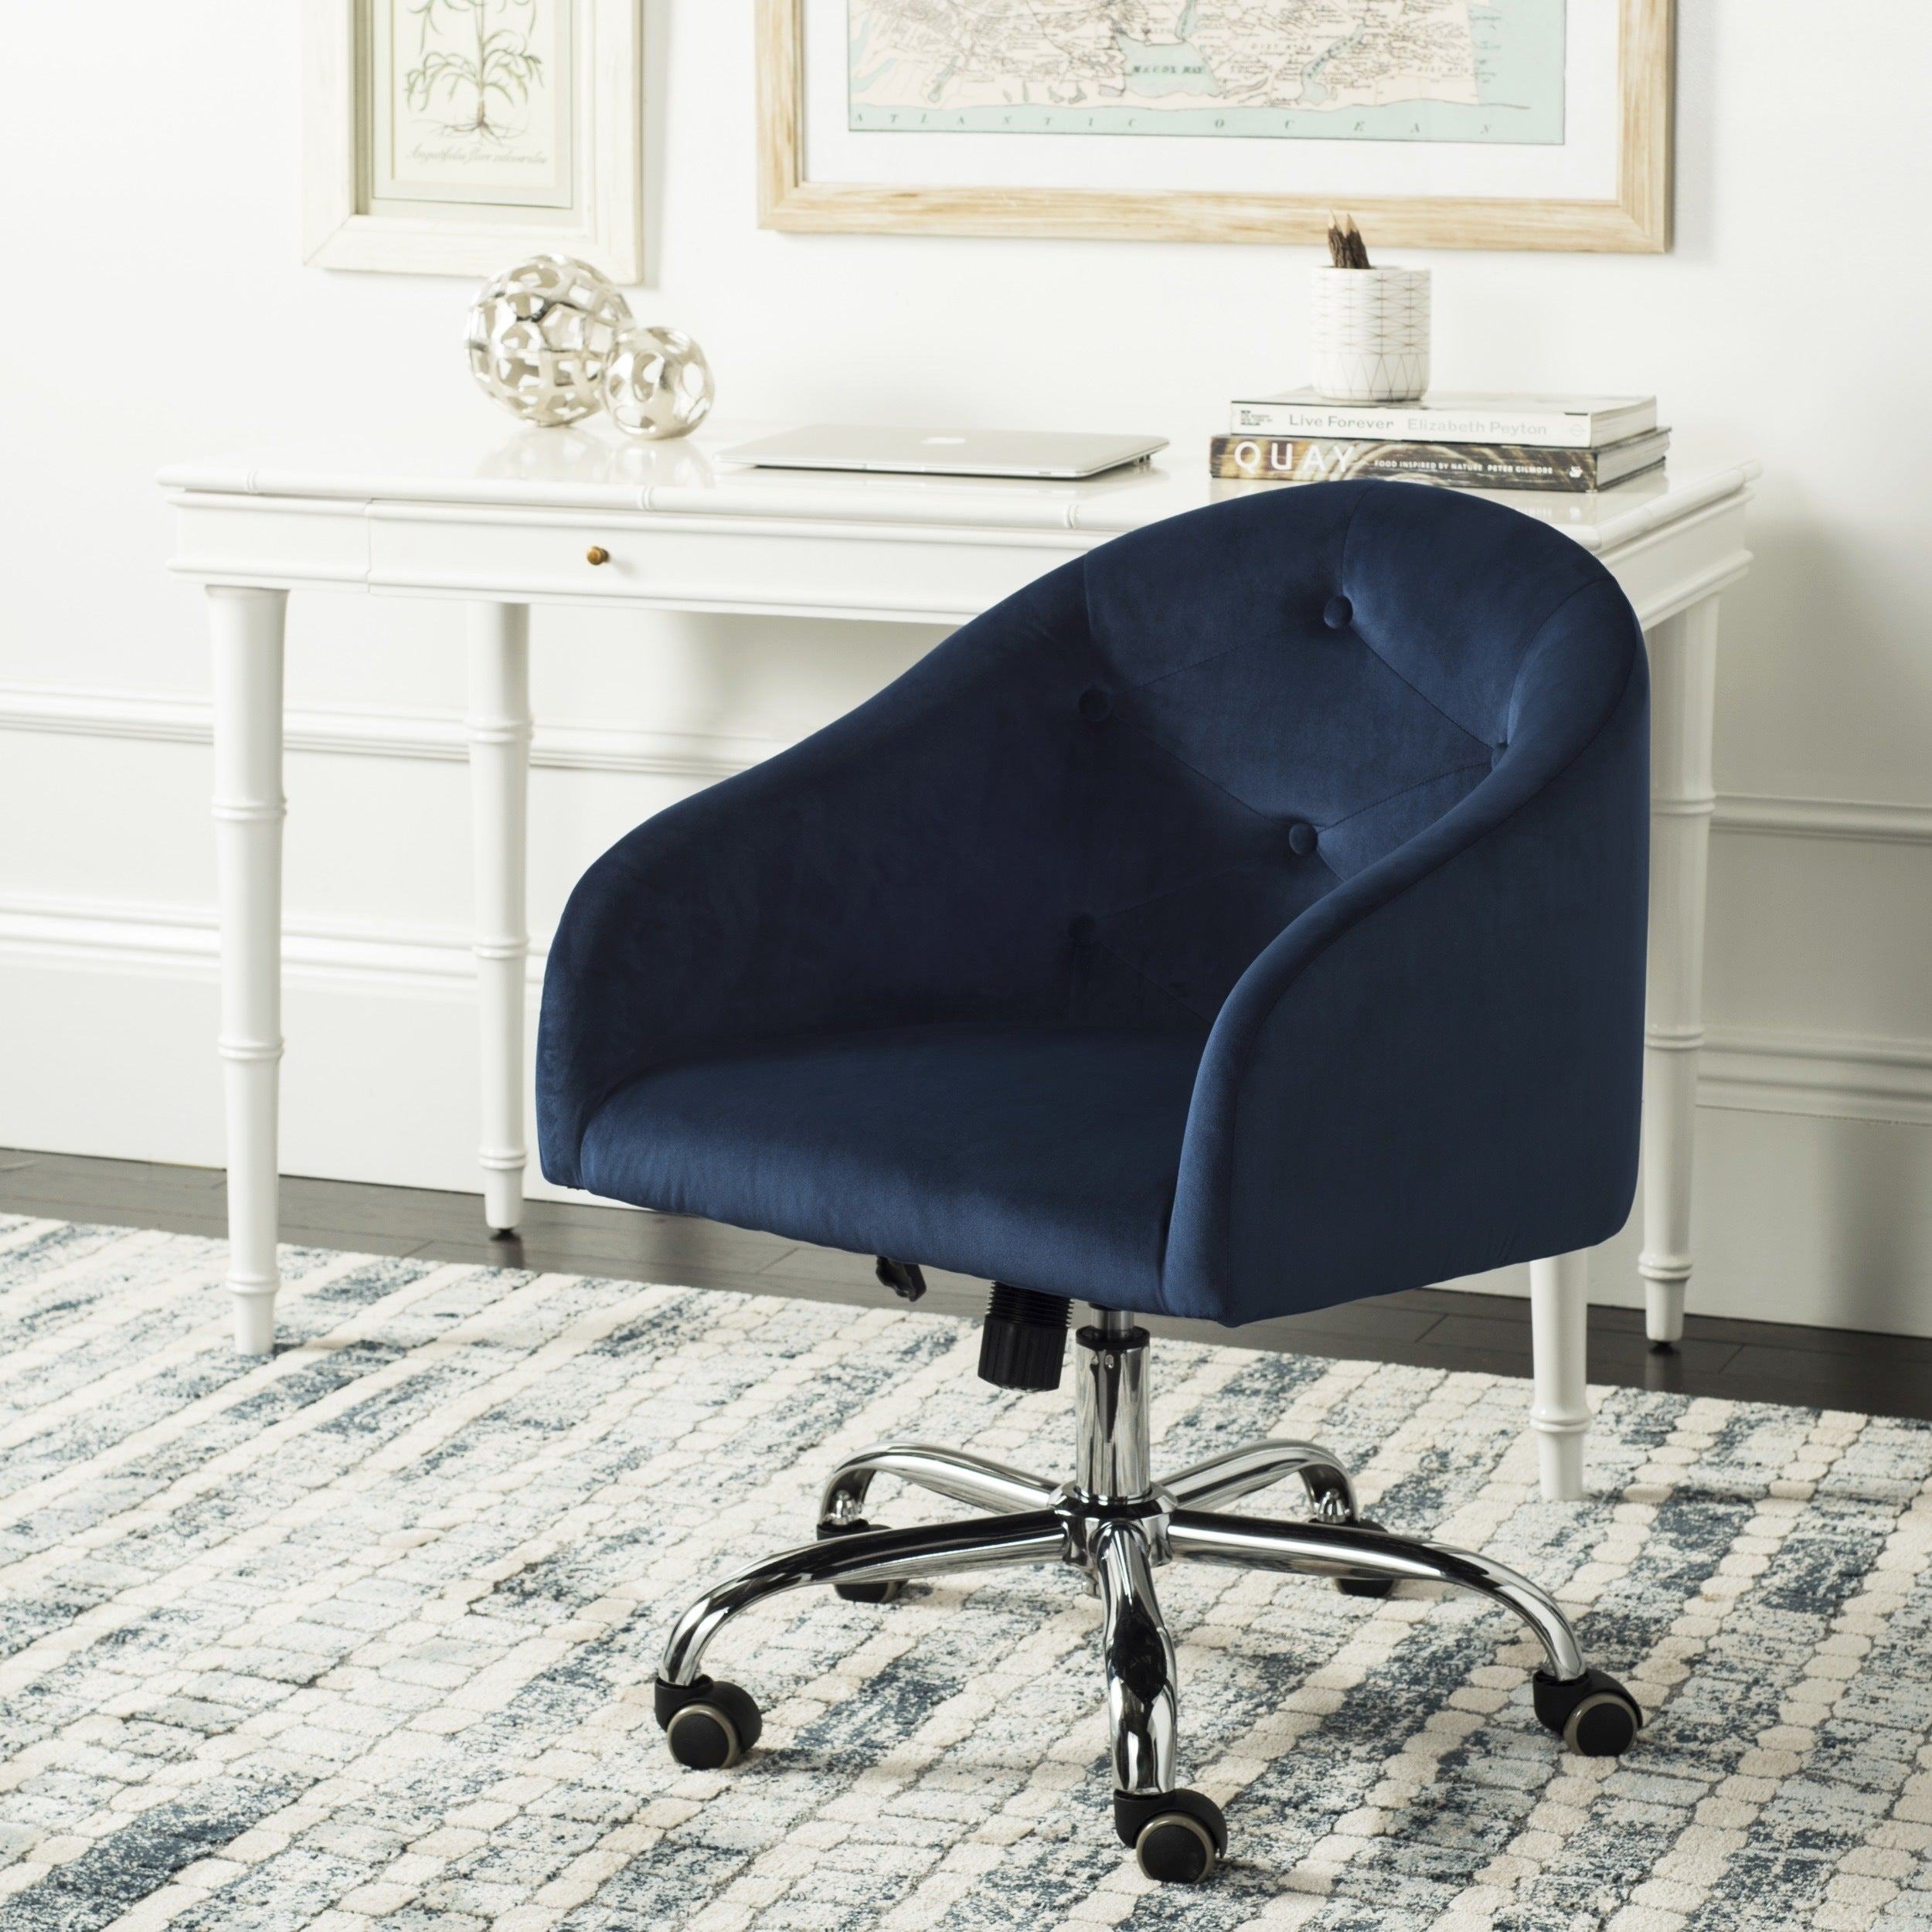 chair baby tufted blue desk light swivel com pioneerproduceofnorthpole